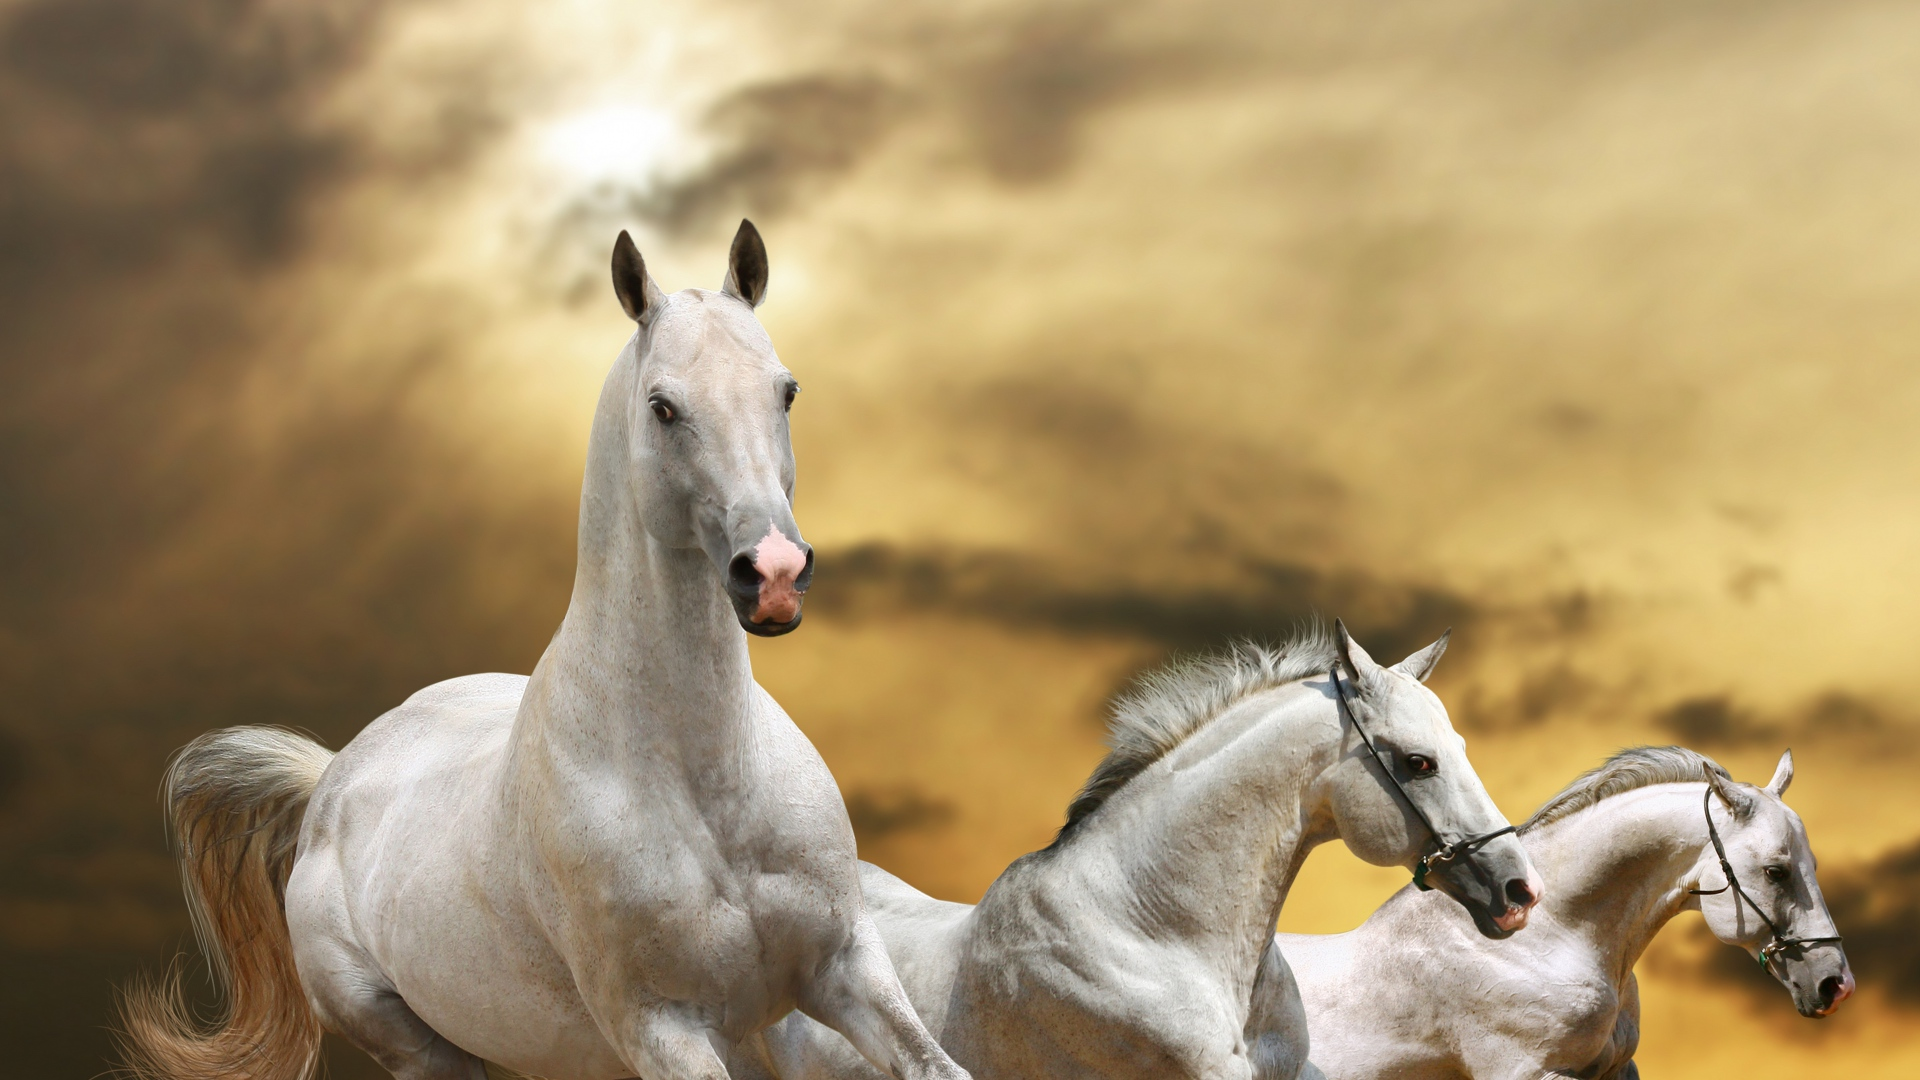 Fantastic Wallpaper Horse Rose - horse_race_freedom_grass_dust_sky_72807_1920x1080  You Should Have_59516.jpg